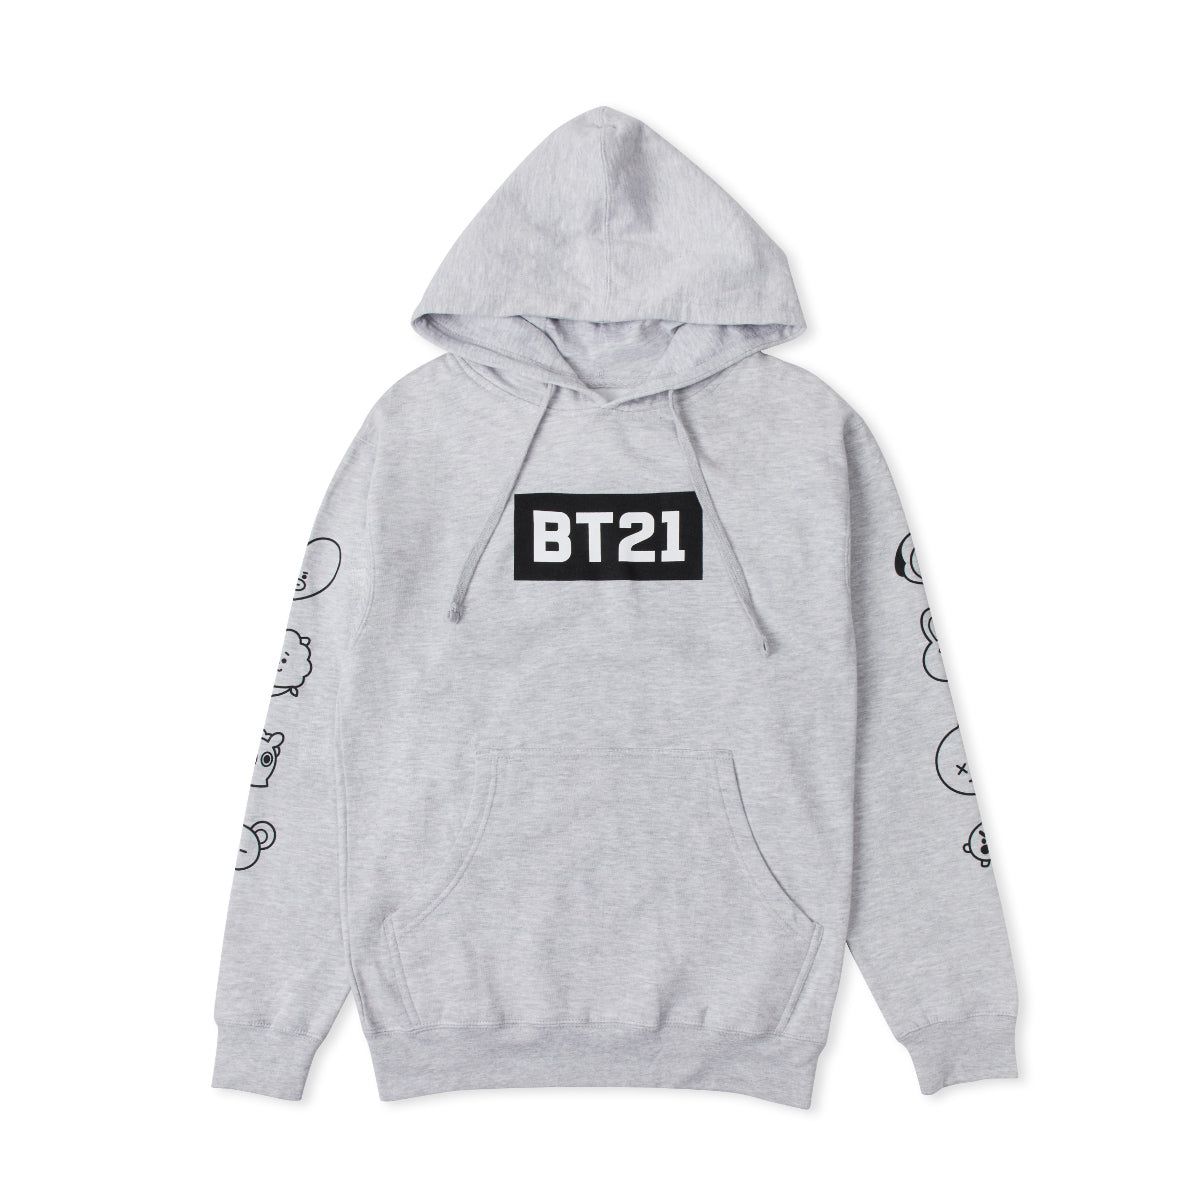 BT21 FACE SLEEVE HOODIE GY